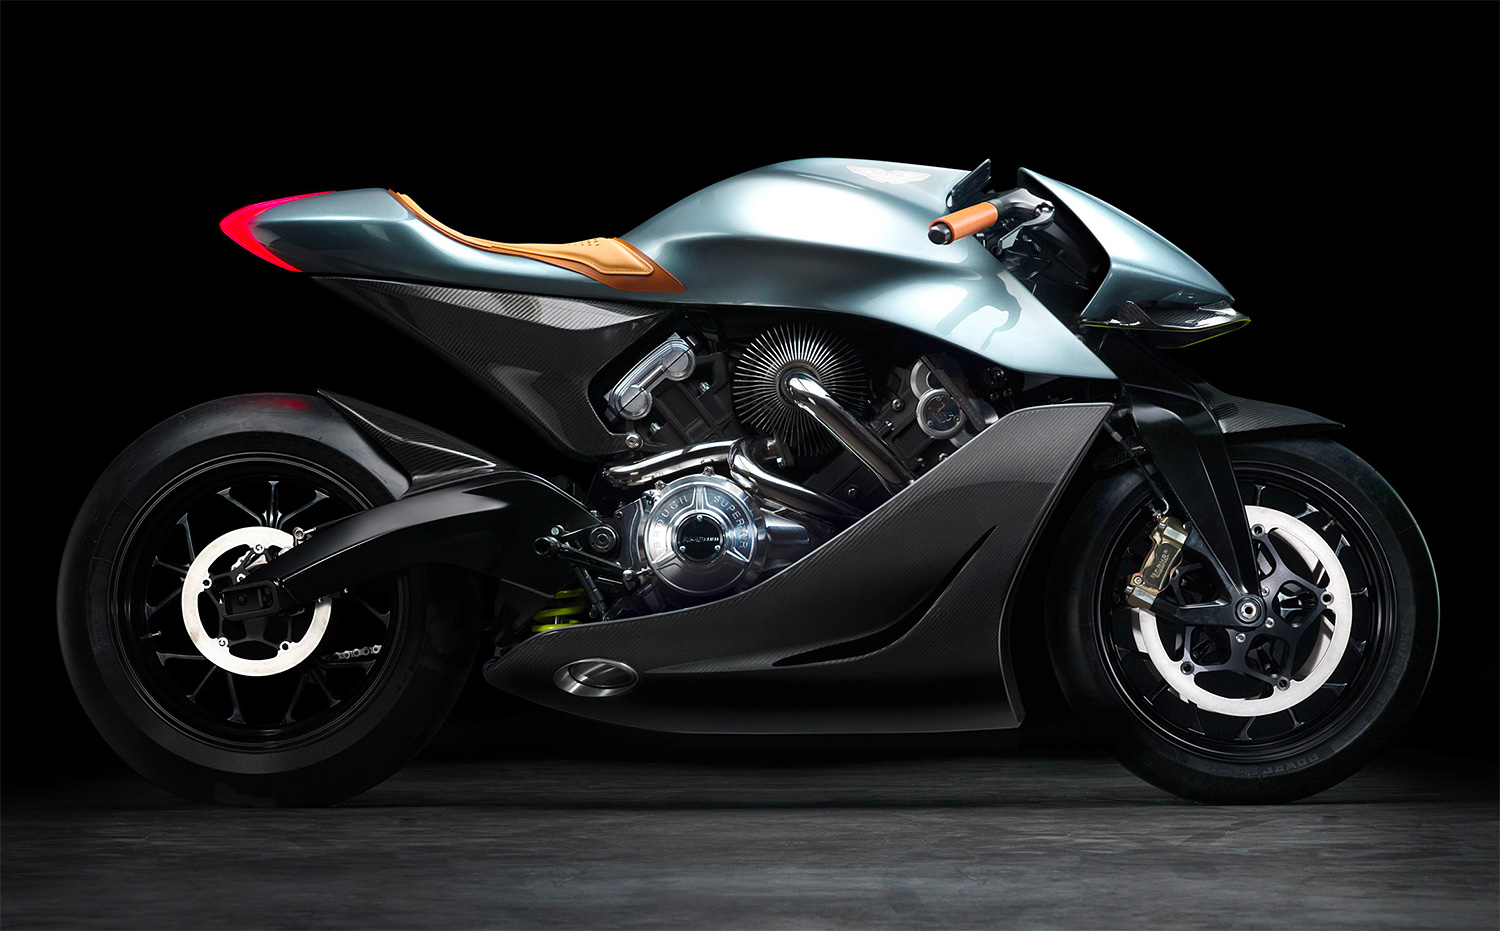 Yes, An Aston Martin Motorcycle at werd.com